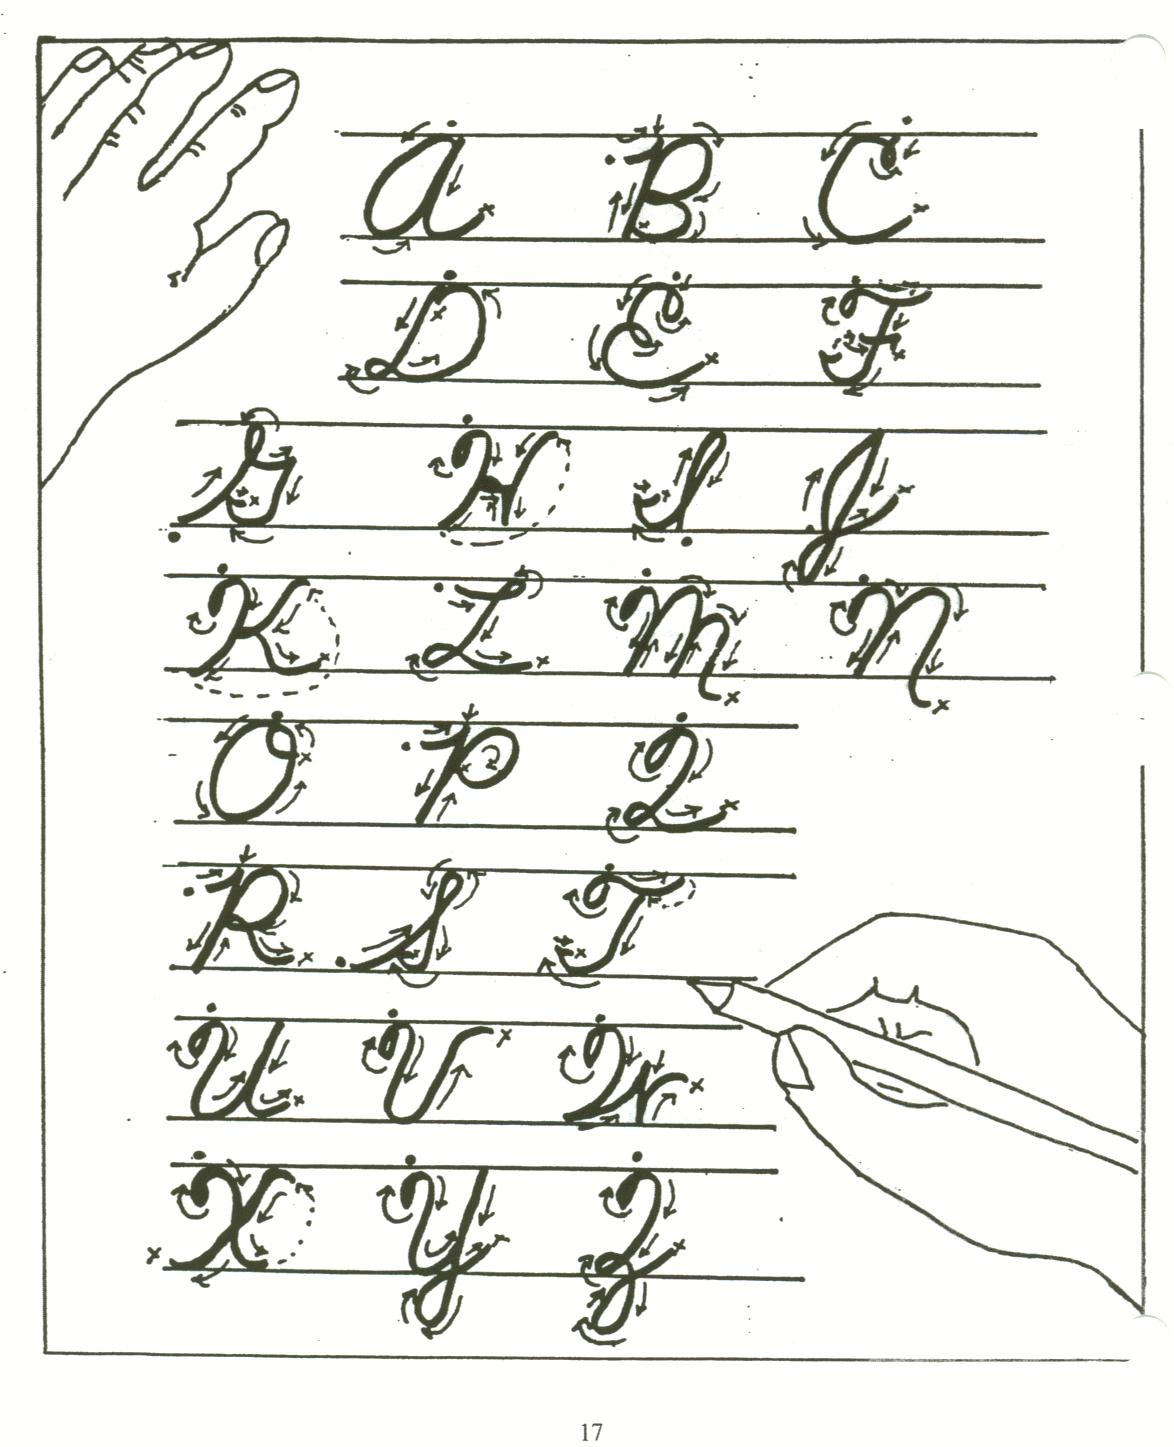 How to write in cursive step by step